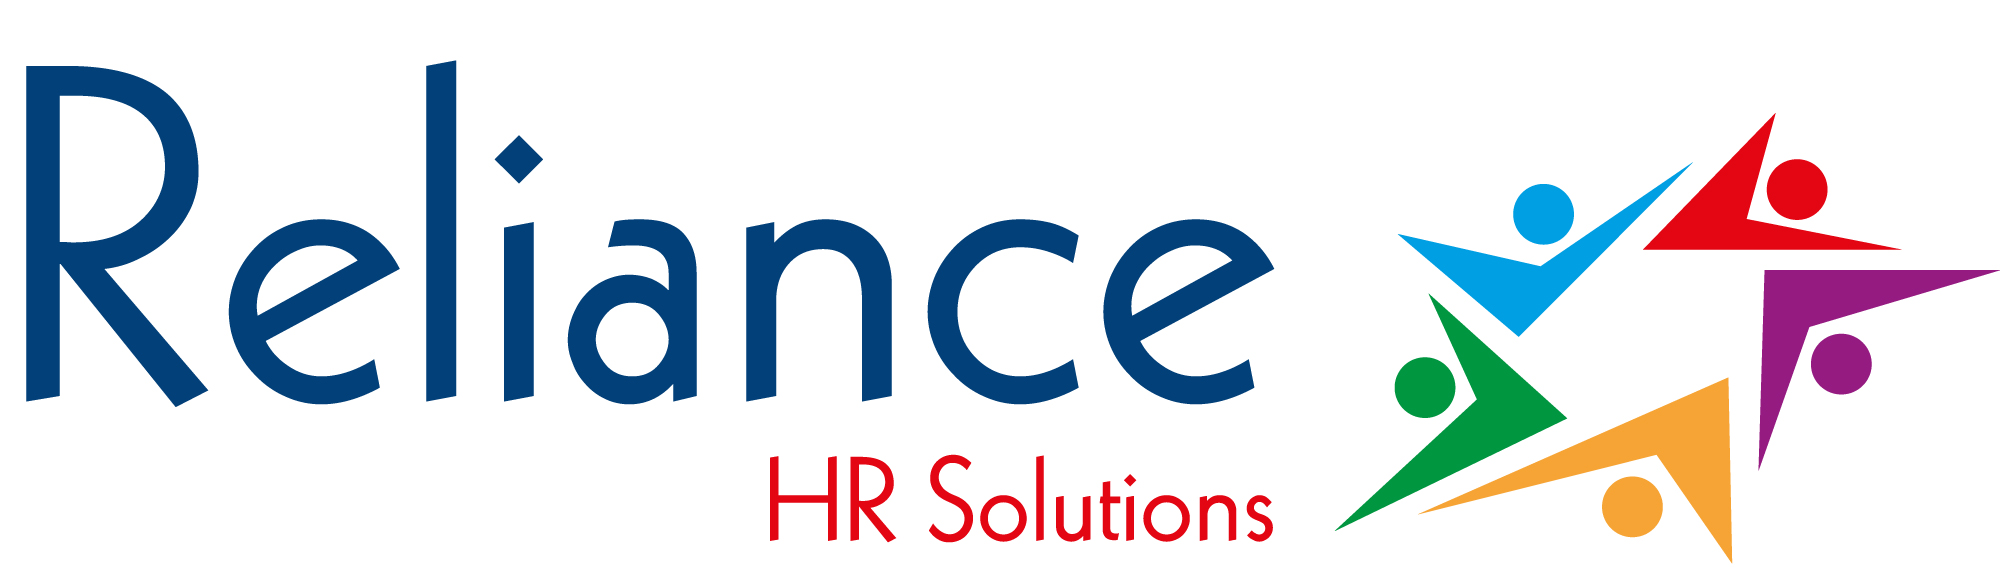 Reliance HR Solutions